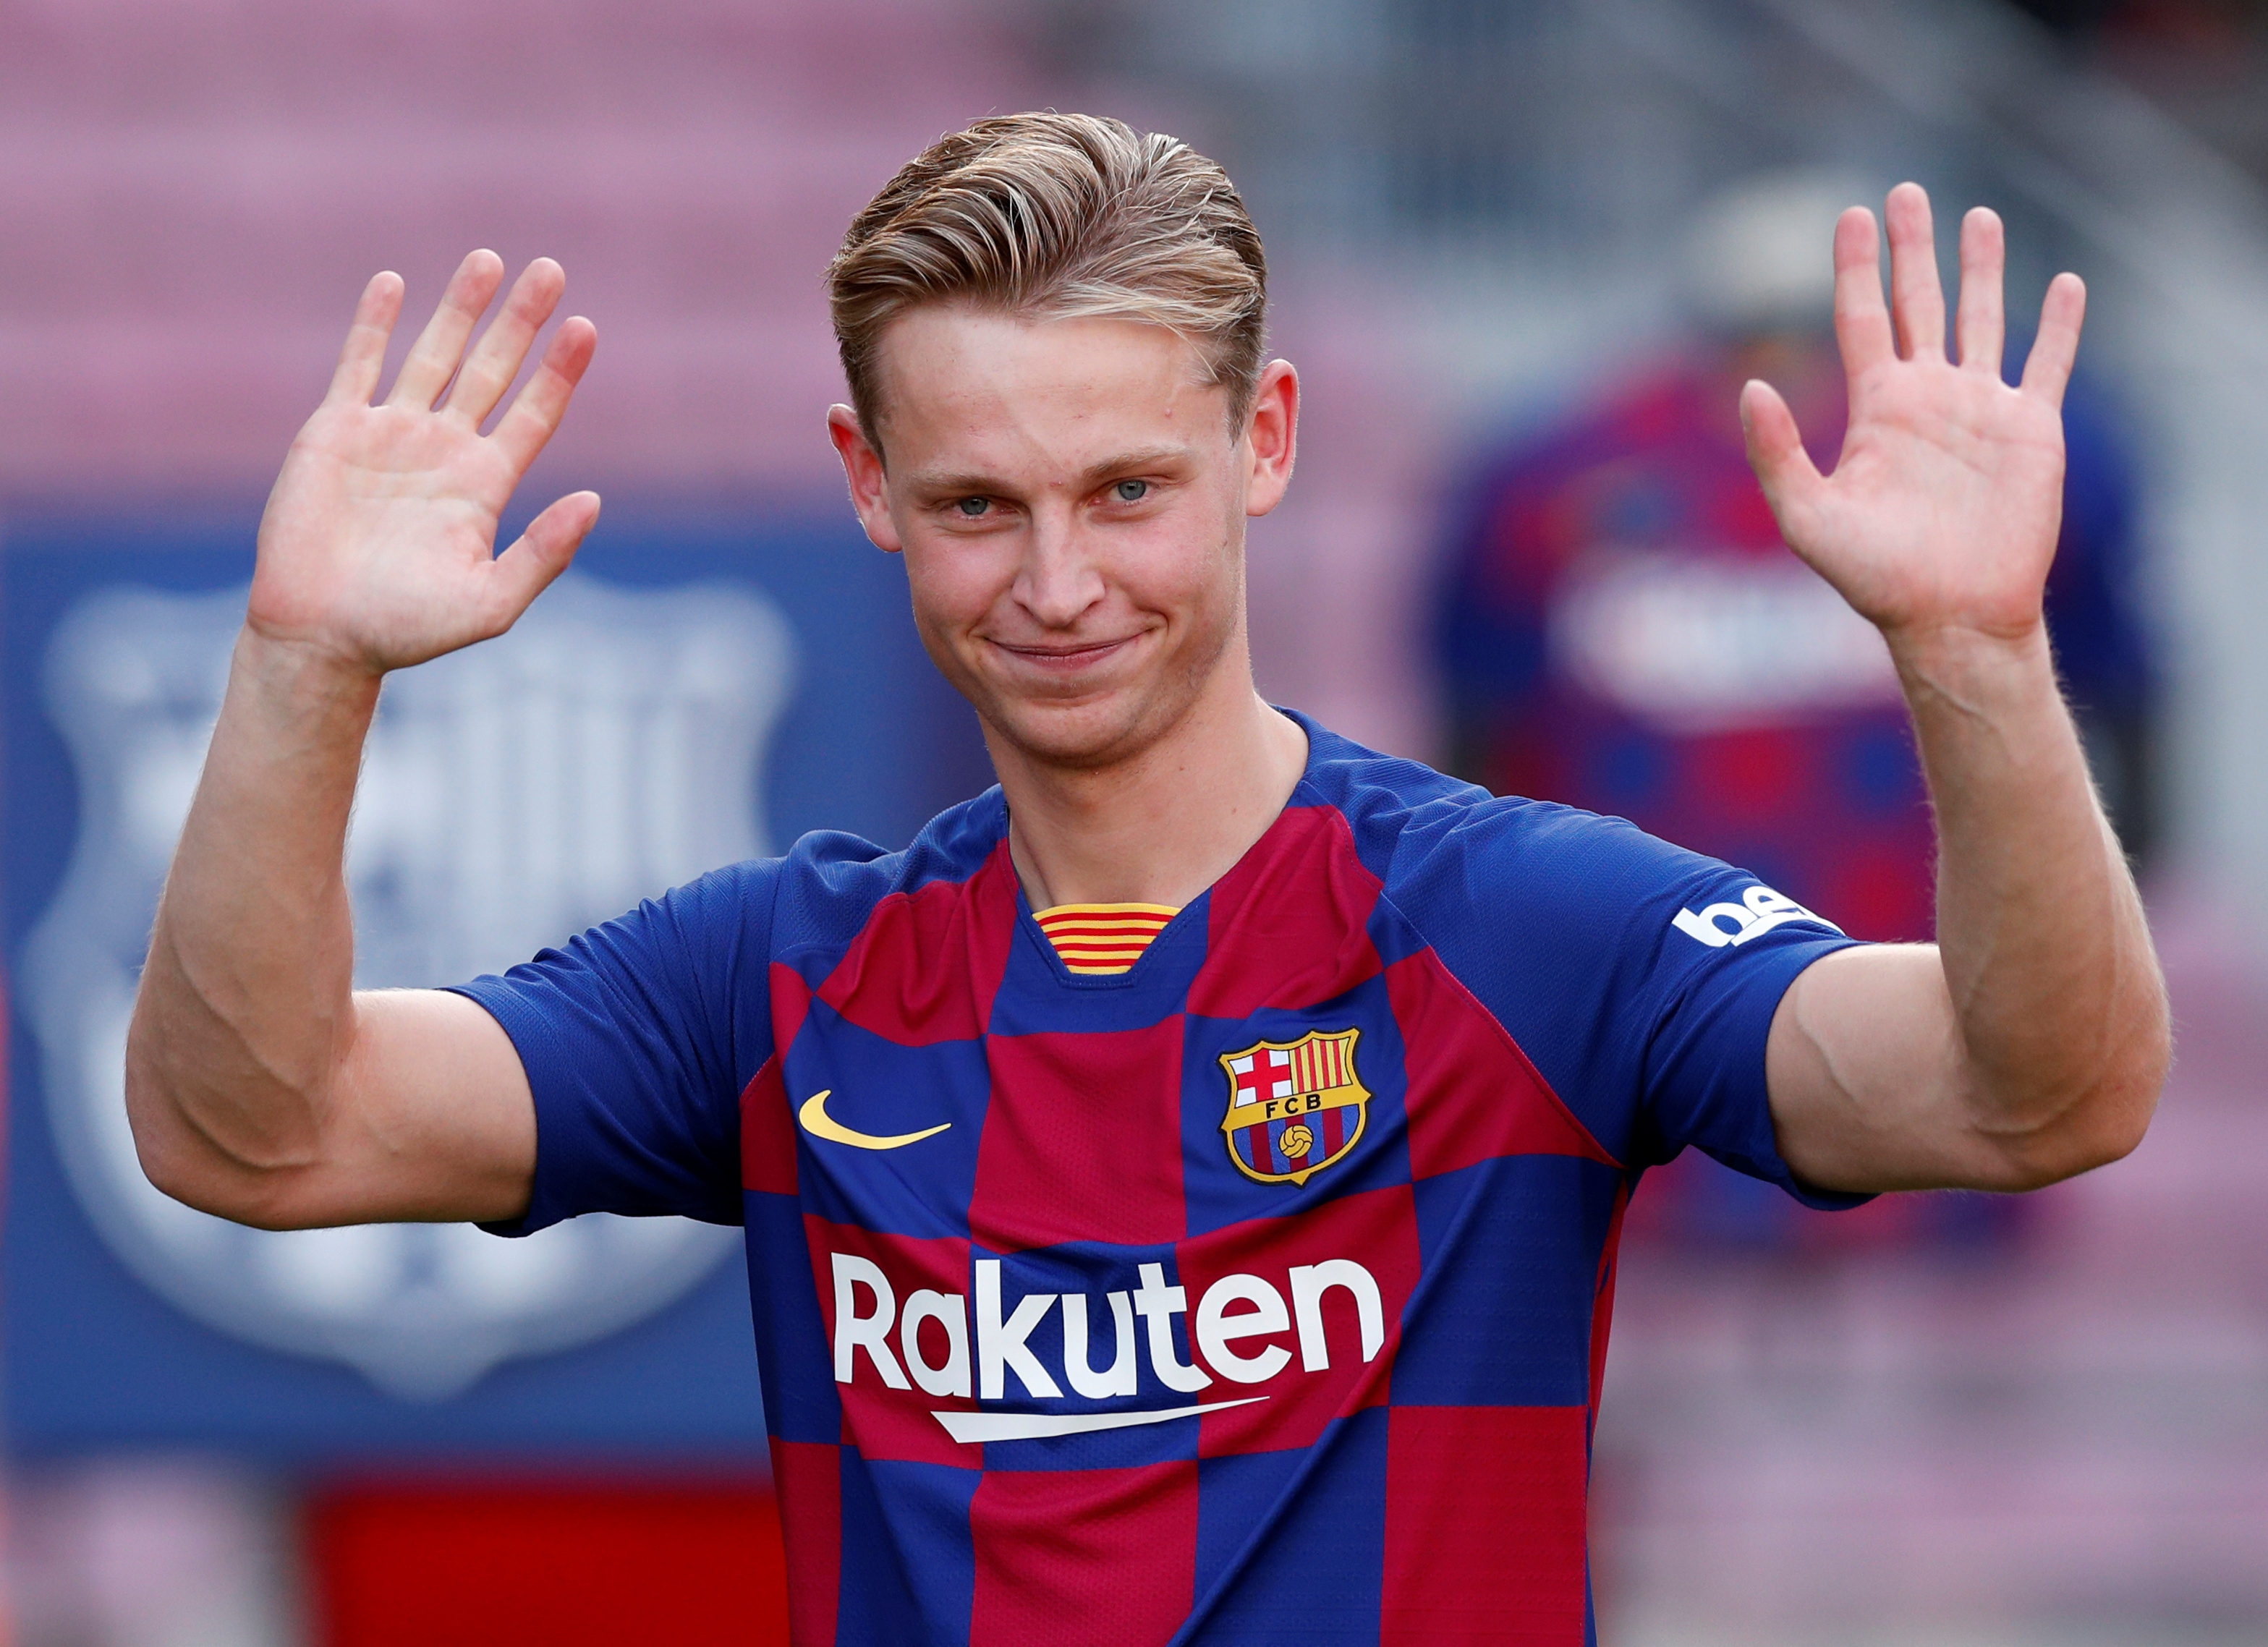 Frenkie De Jong gets frustrated with his Team Mates when he does not get the ball back